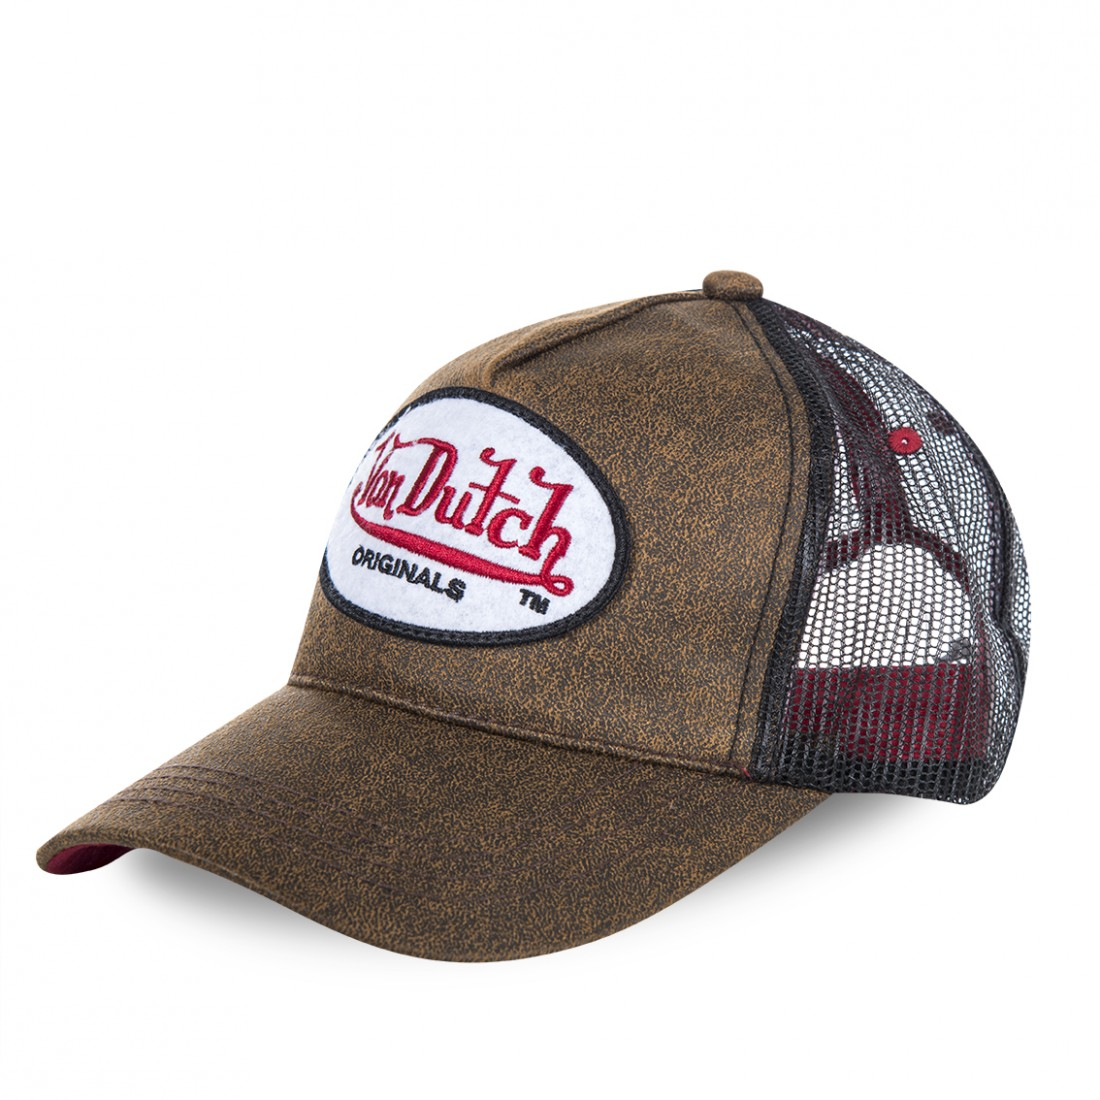 Casquette baseball homme Von Dutch Originals filet Marron